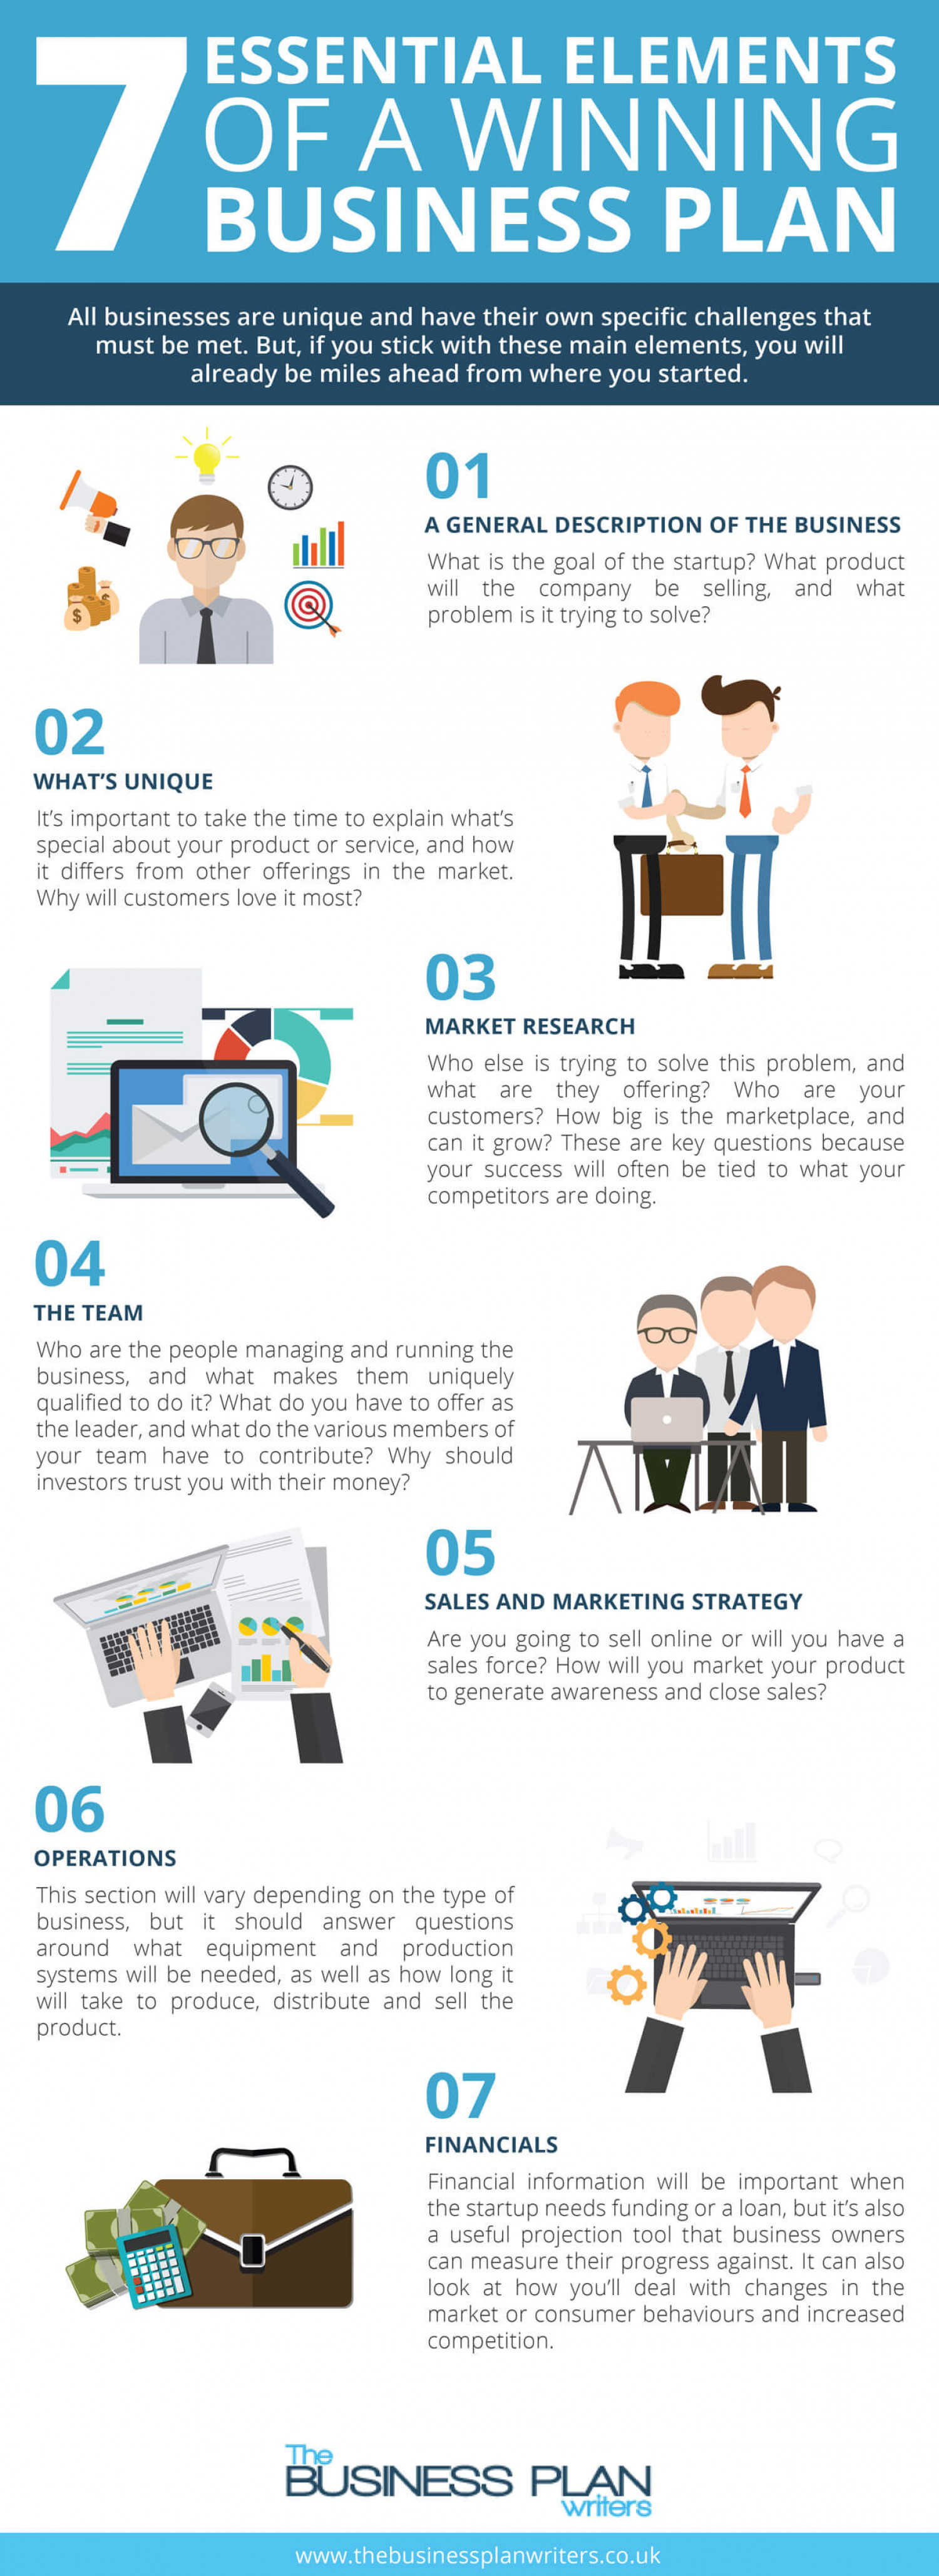 7 Essential Elements of a Winning Business Plan Infographic